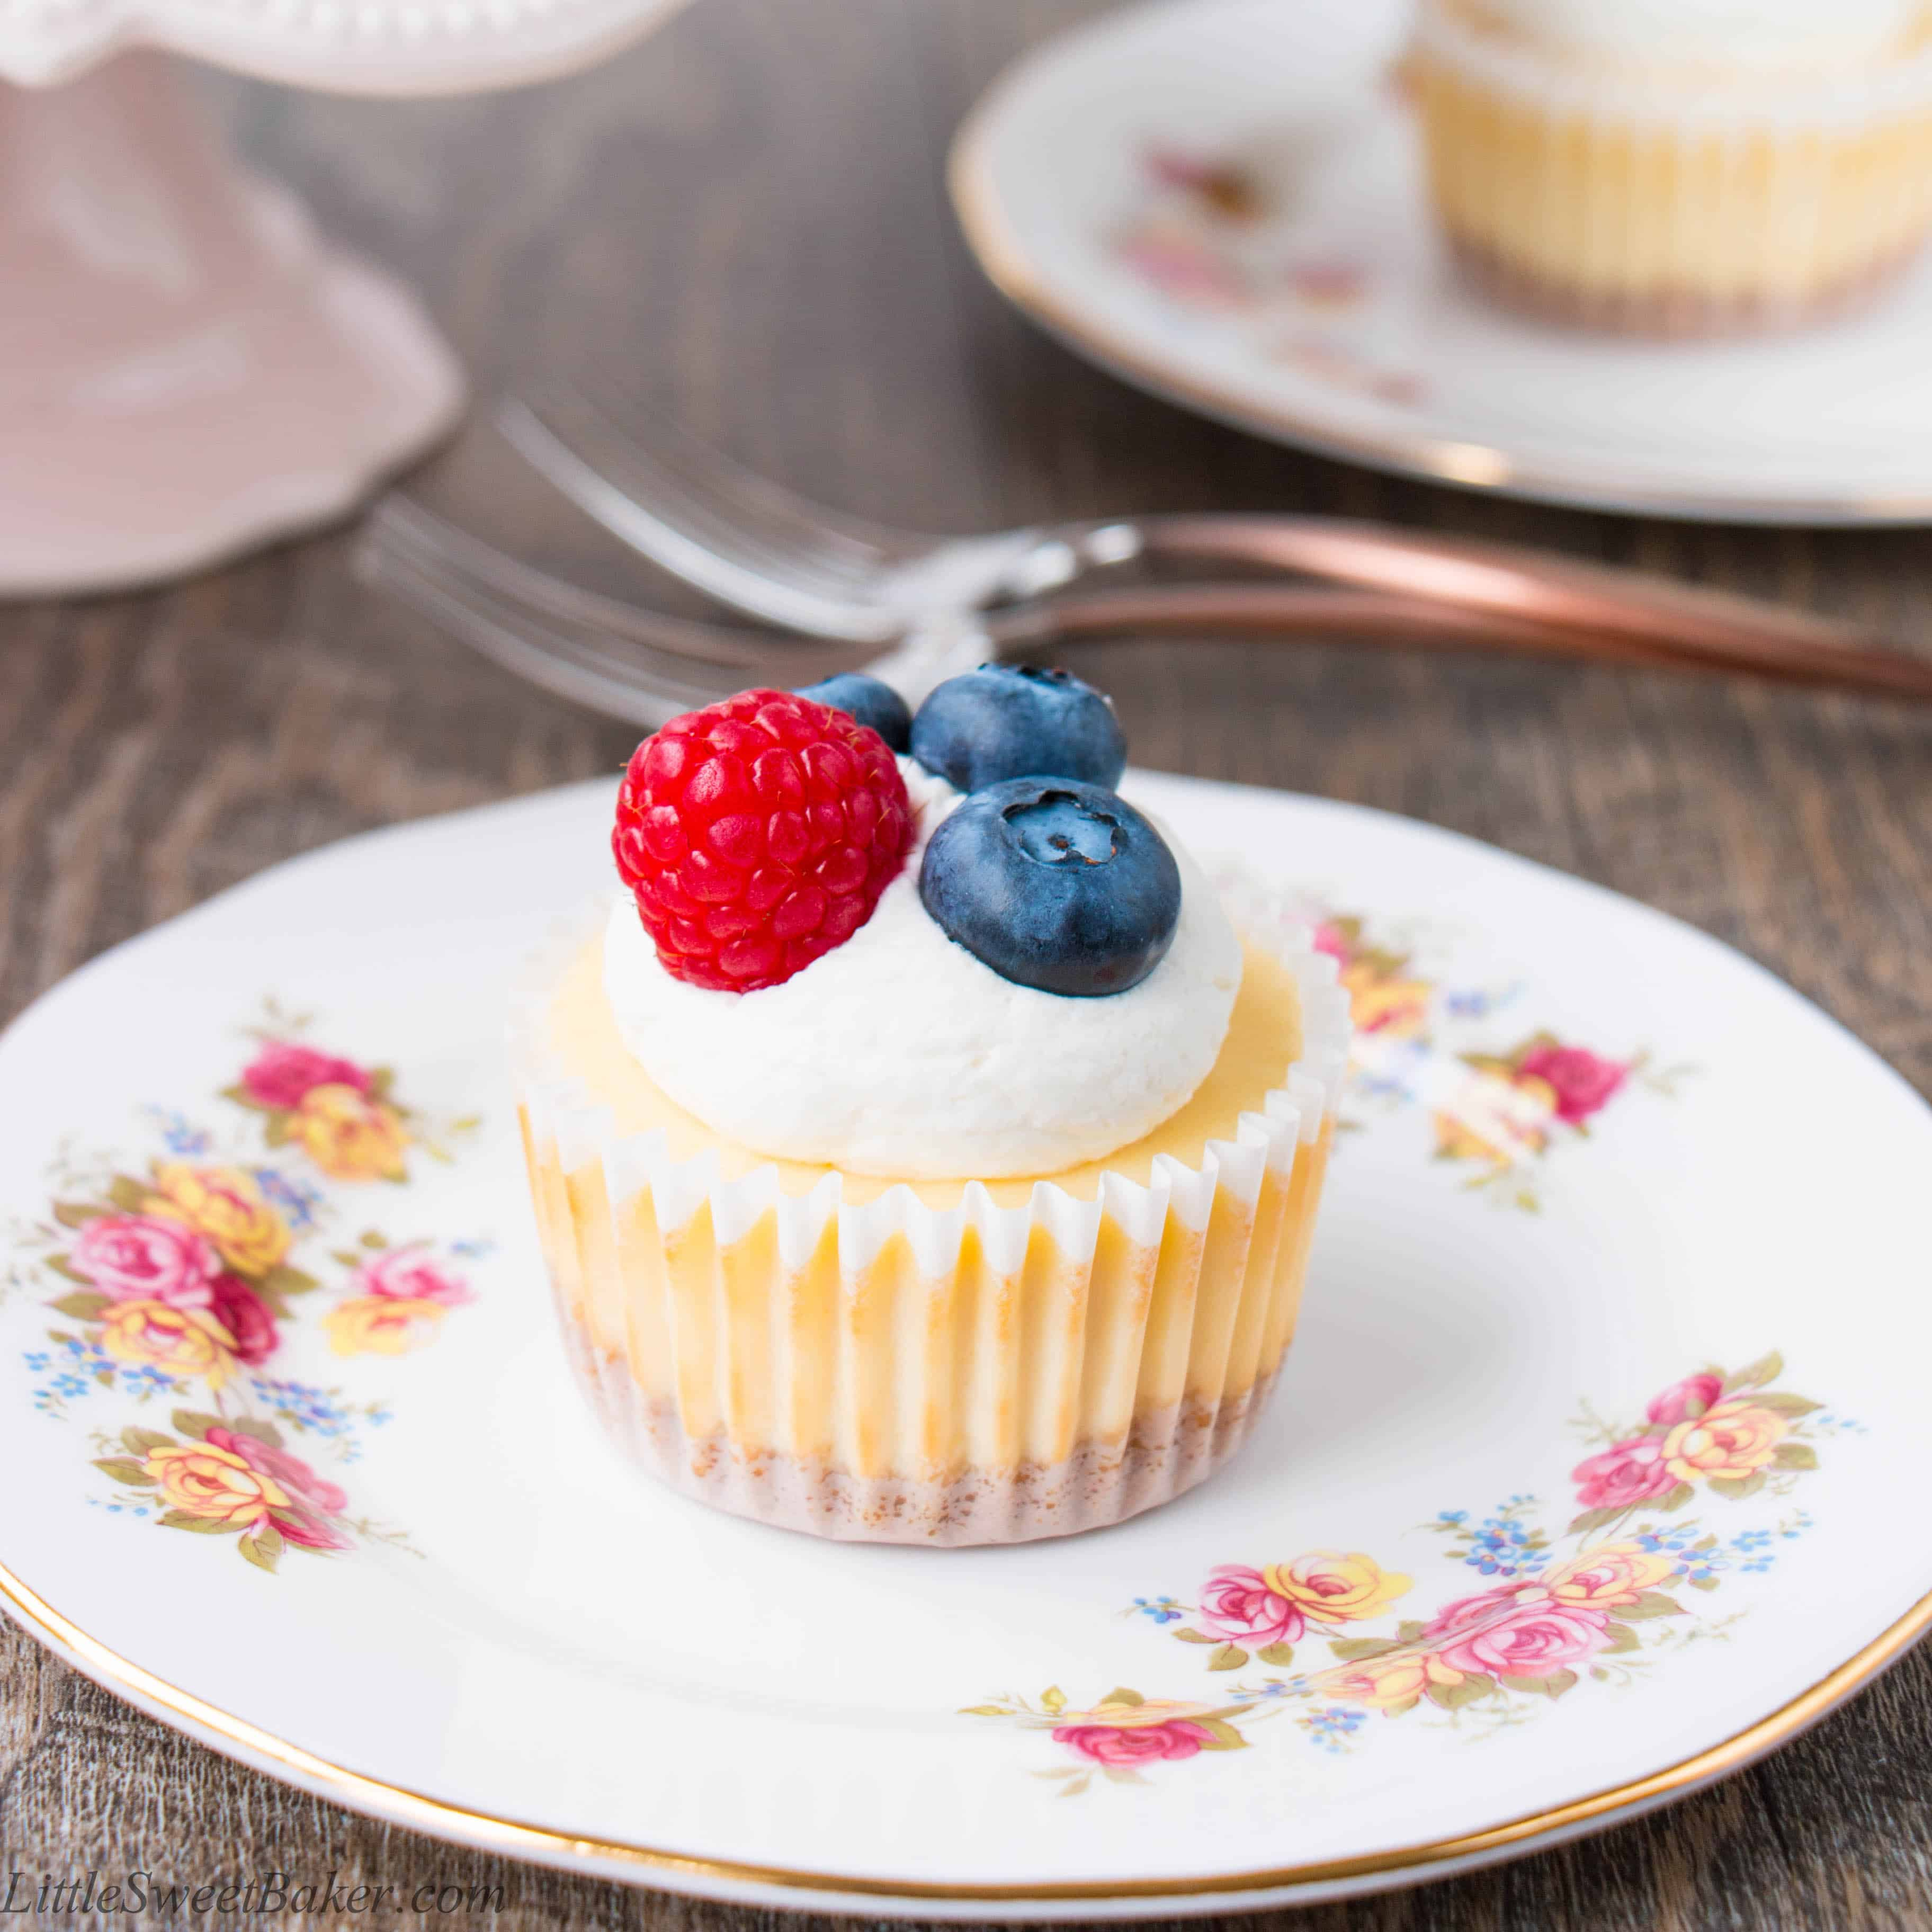 How To Make Mini Cheesecakes (video) - Little Sweet Baker